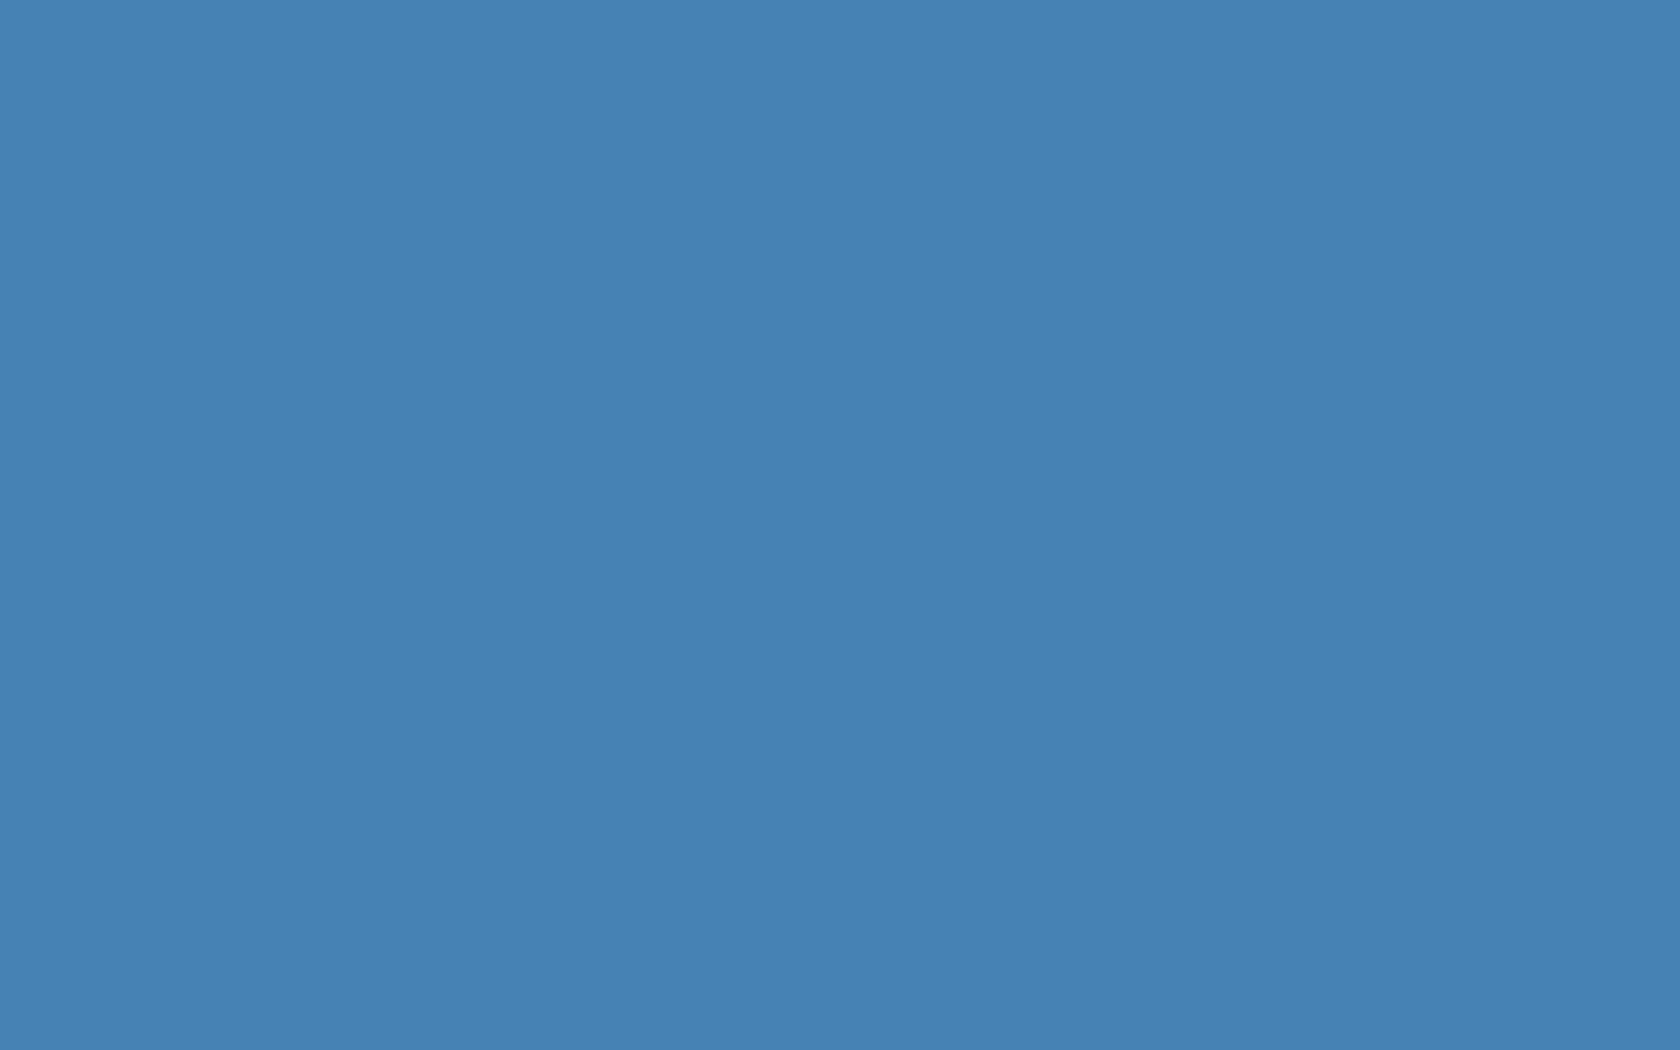 1680x1050 Steel Blue Solid Color Background